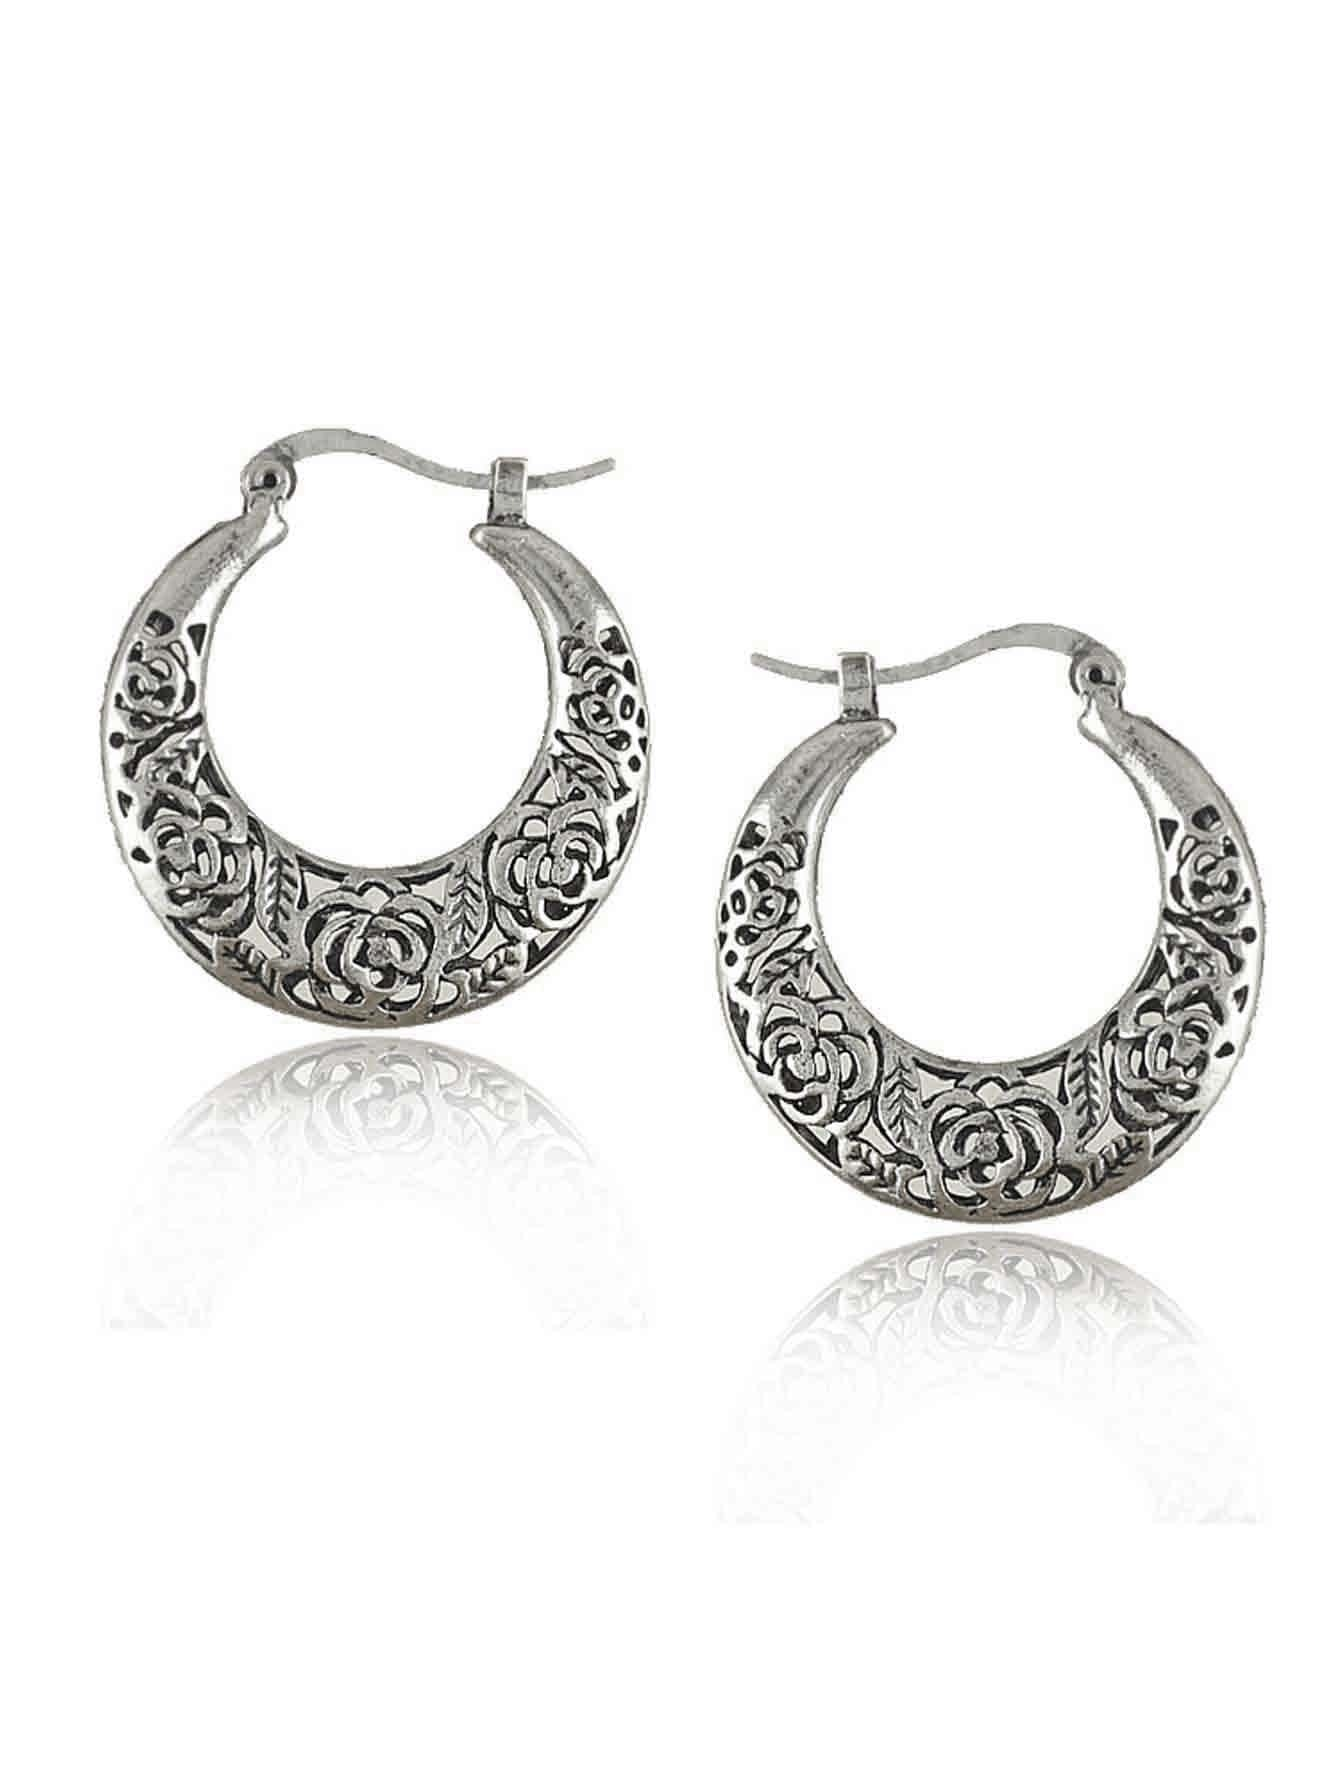 Hollow Rose Design Hoop Earrings jia kang nong